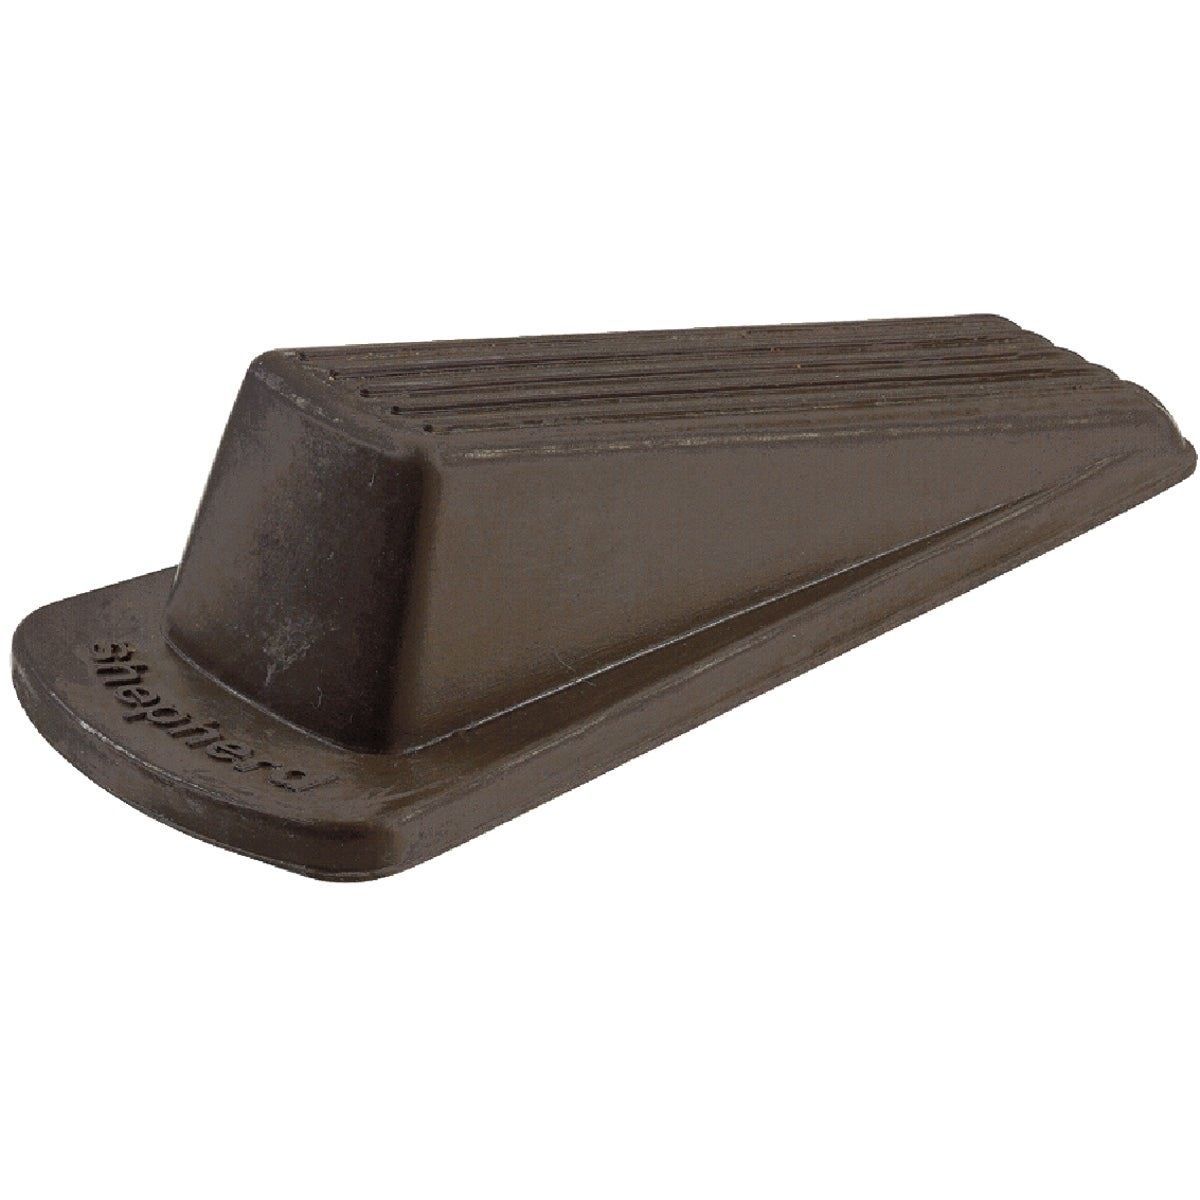 HEAVY DUTY BR DOOR STOP - 227811 by Shepherd Hardware